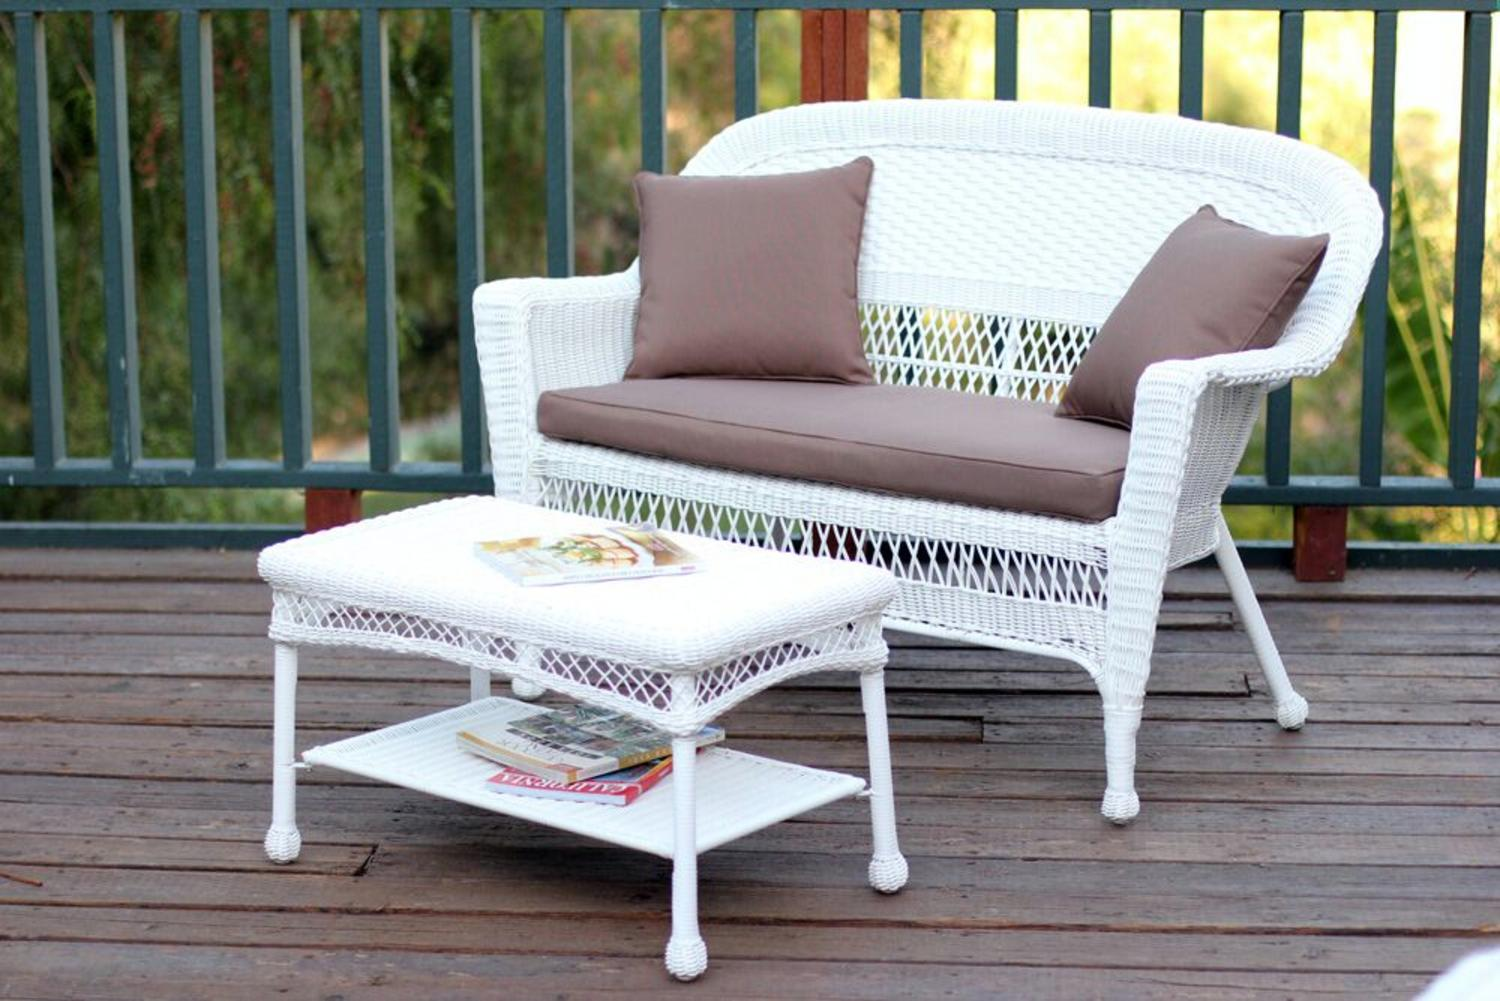 Superior 2 Piece Aurora White Resin Wicker Patio Loveseat And Coffee Table Furniture  Set   Brown